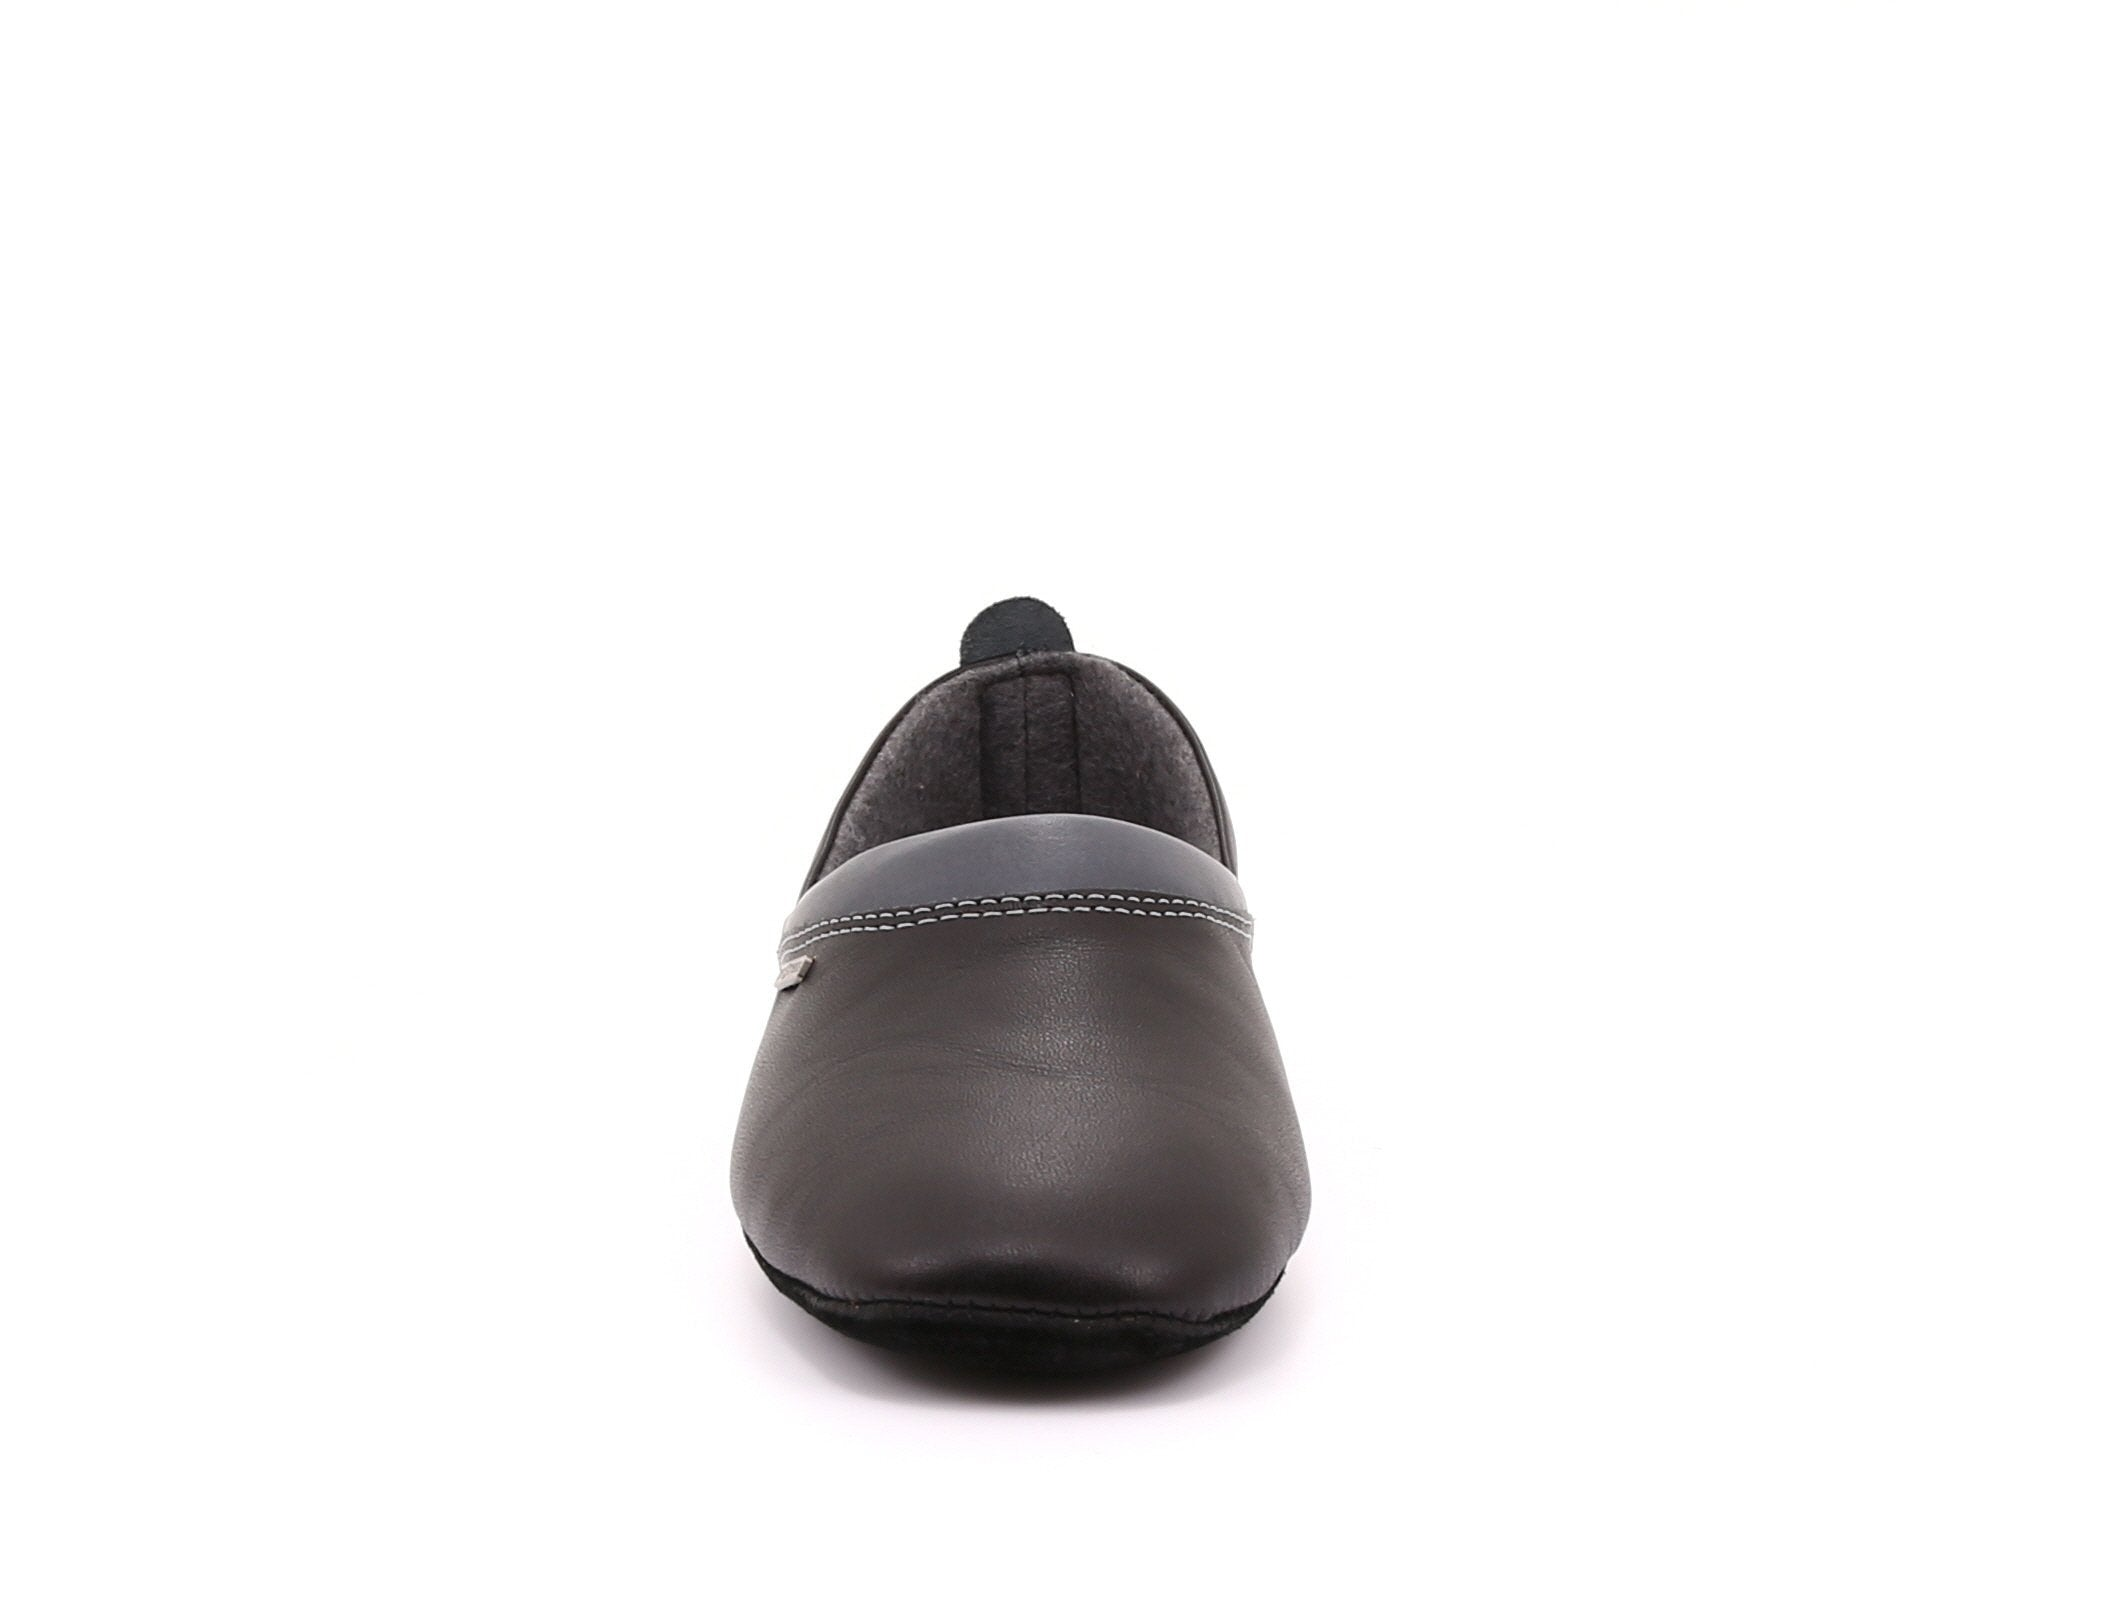 Jackson Men's Leather Slippers with Suede Sole - Alfred Cloutier Ltd. - Canada